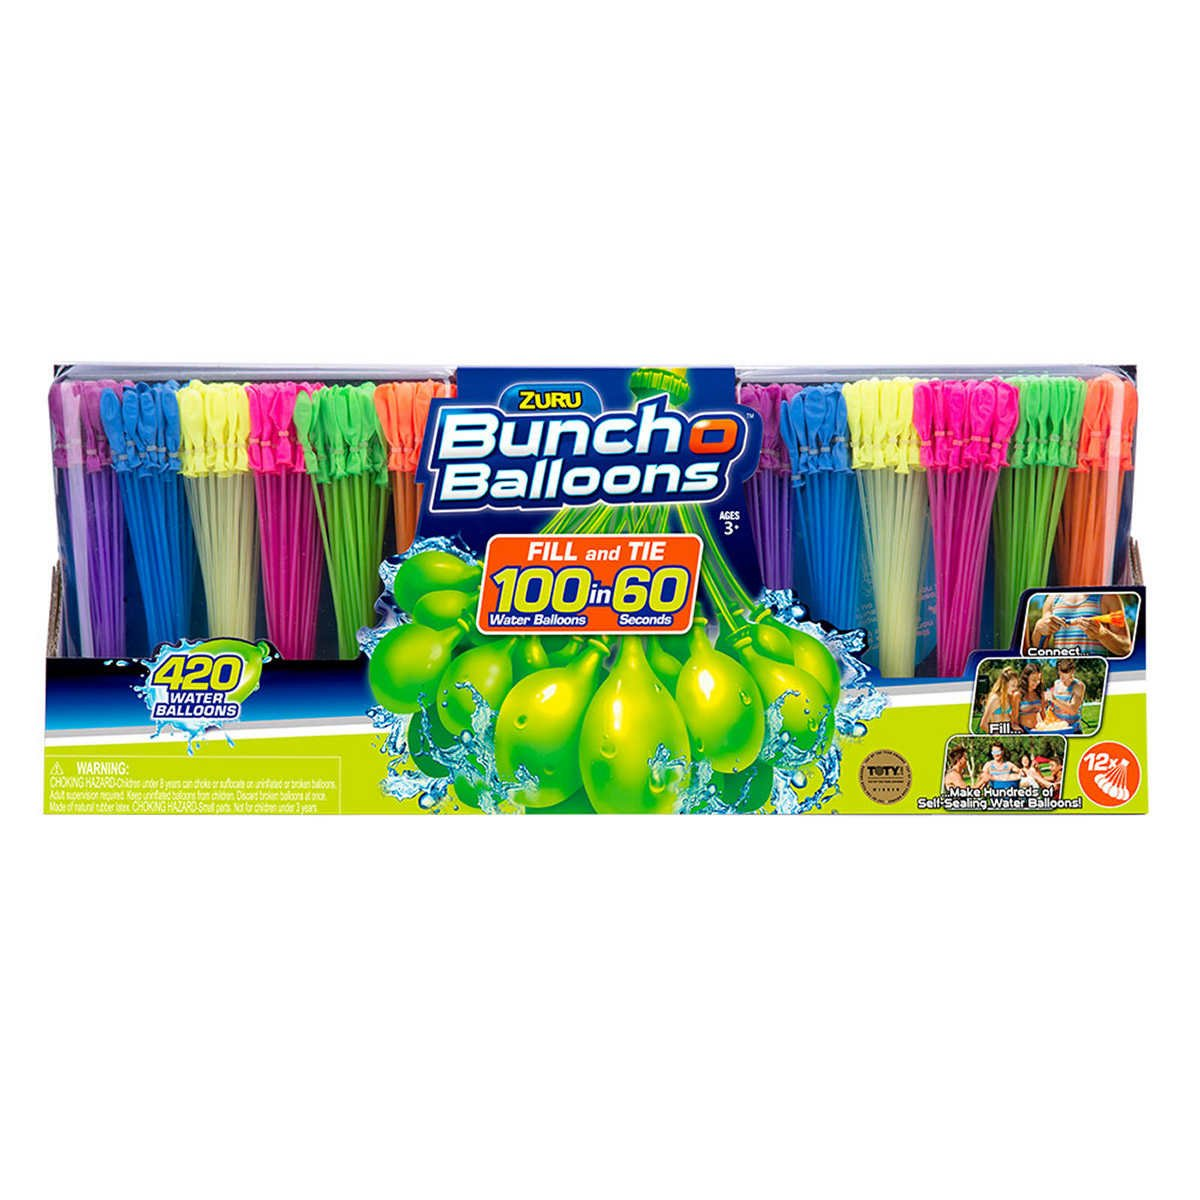 Bunch O Balloons Zuru 420 12 Pack, 840 Balloons, Rainbow